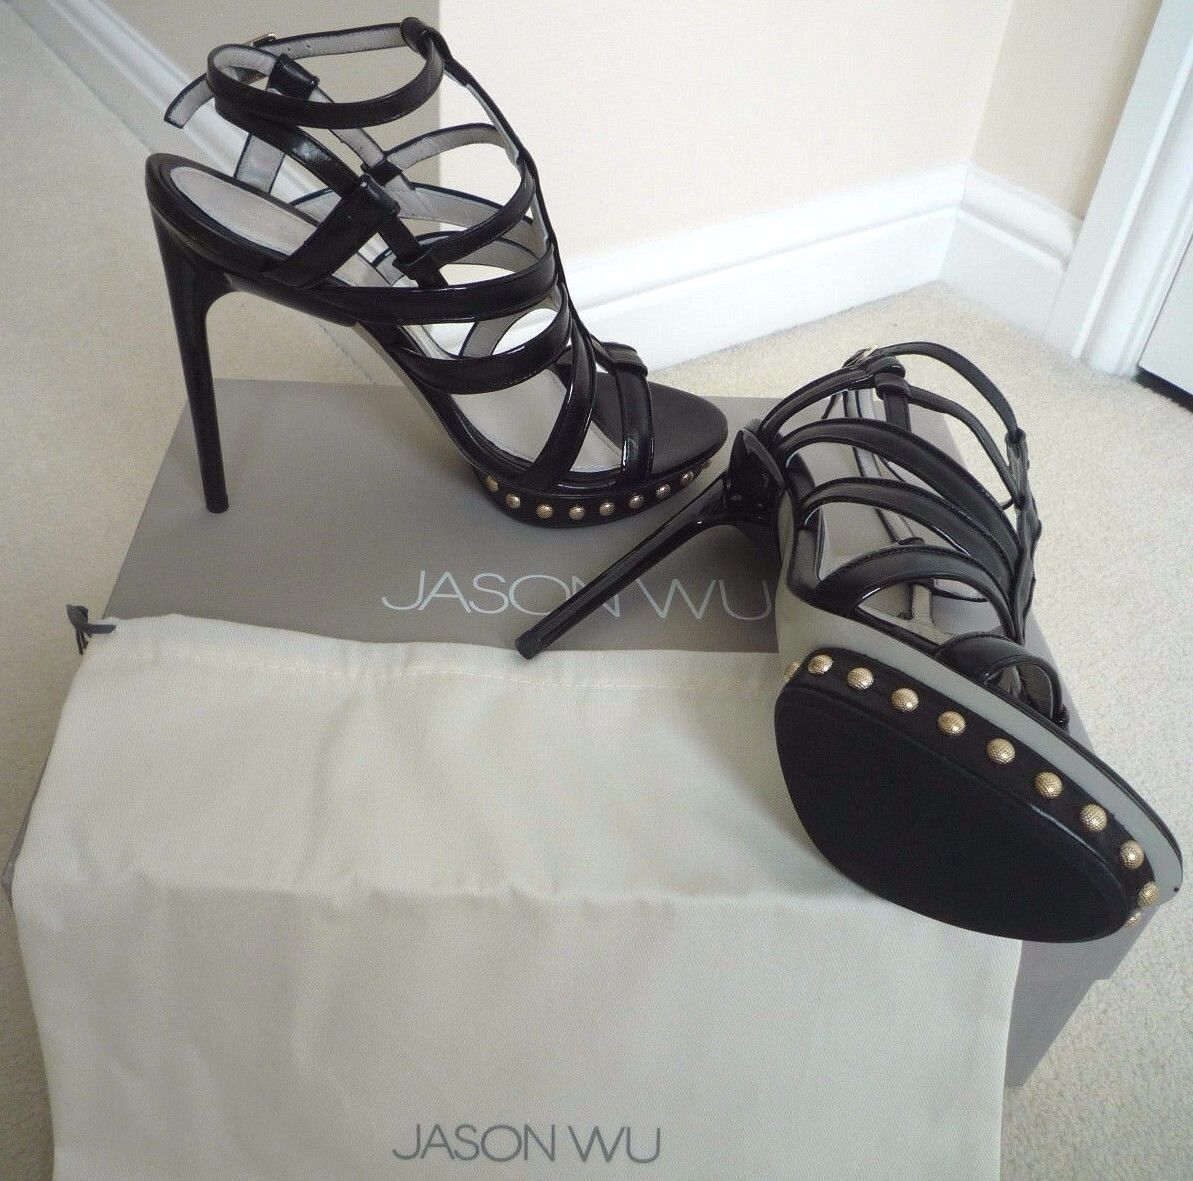 Jason Wu IN PELLE NERA